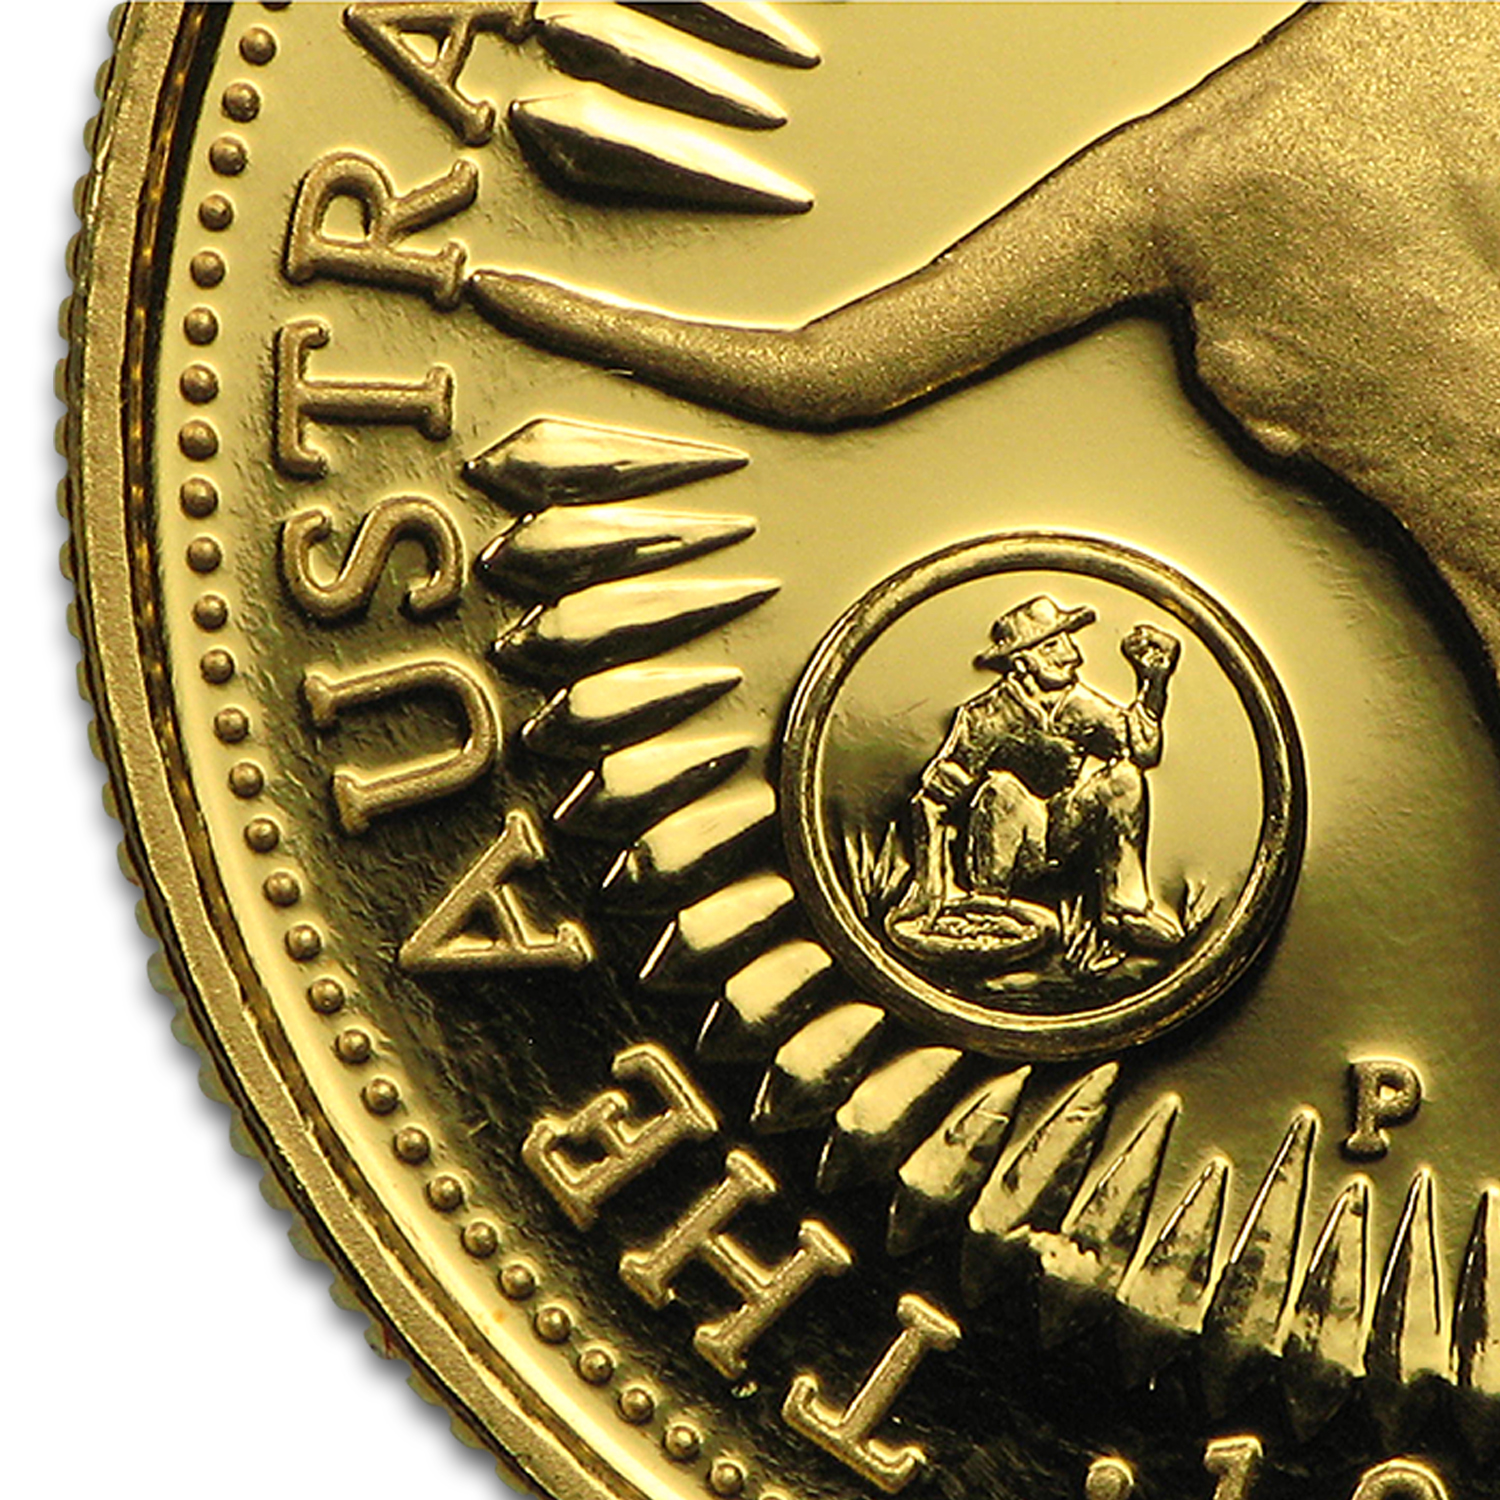 1996 Australia 4-Coin Gold Nugget Proof Set